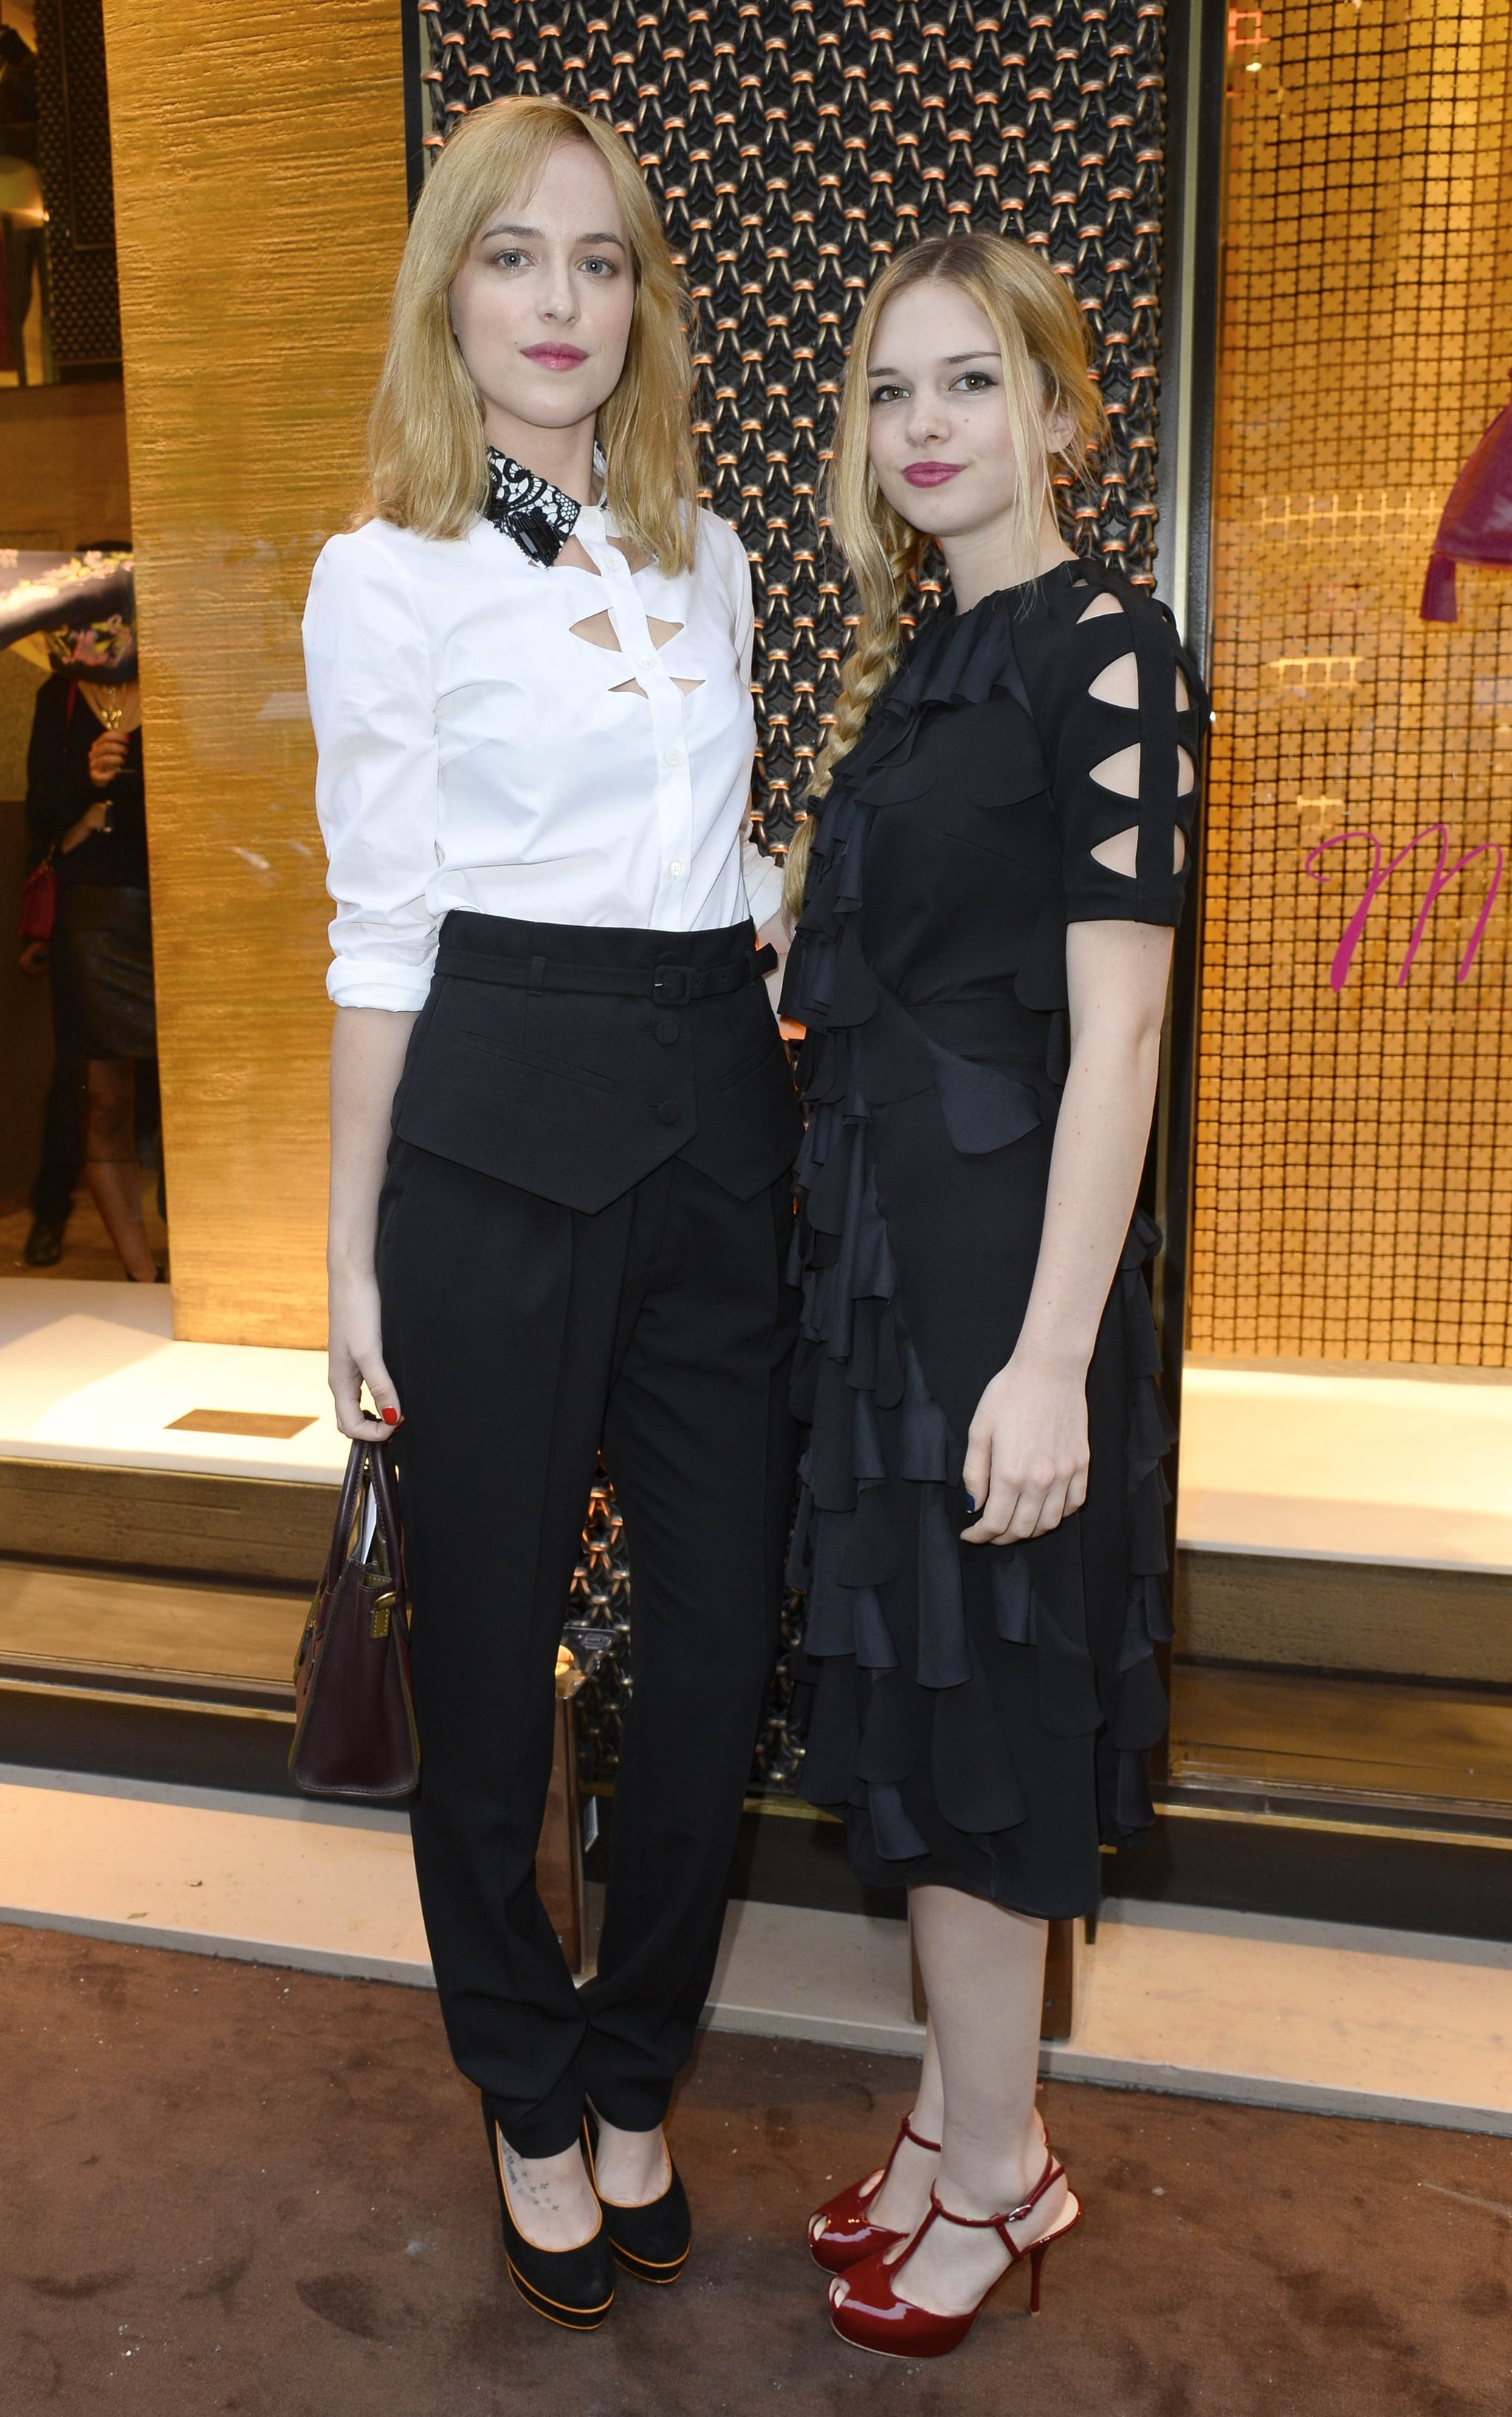 Dakota Johnson and Stella Banderas doubled up on the blond power at the Paris Loewe boutique opening. Source: Loewe